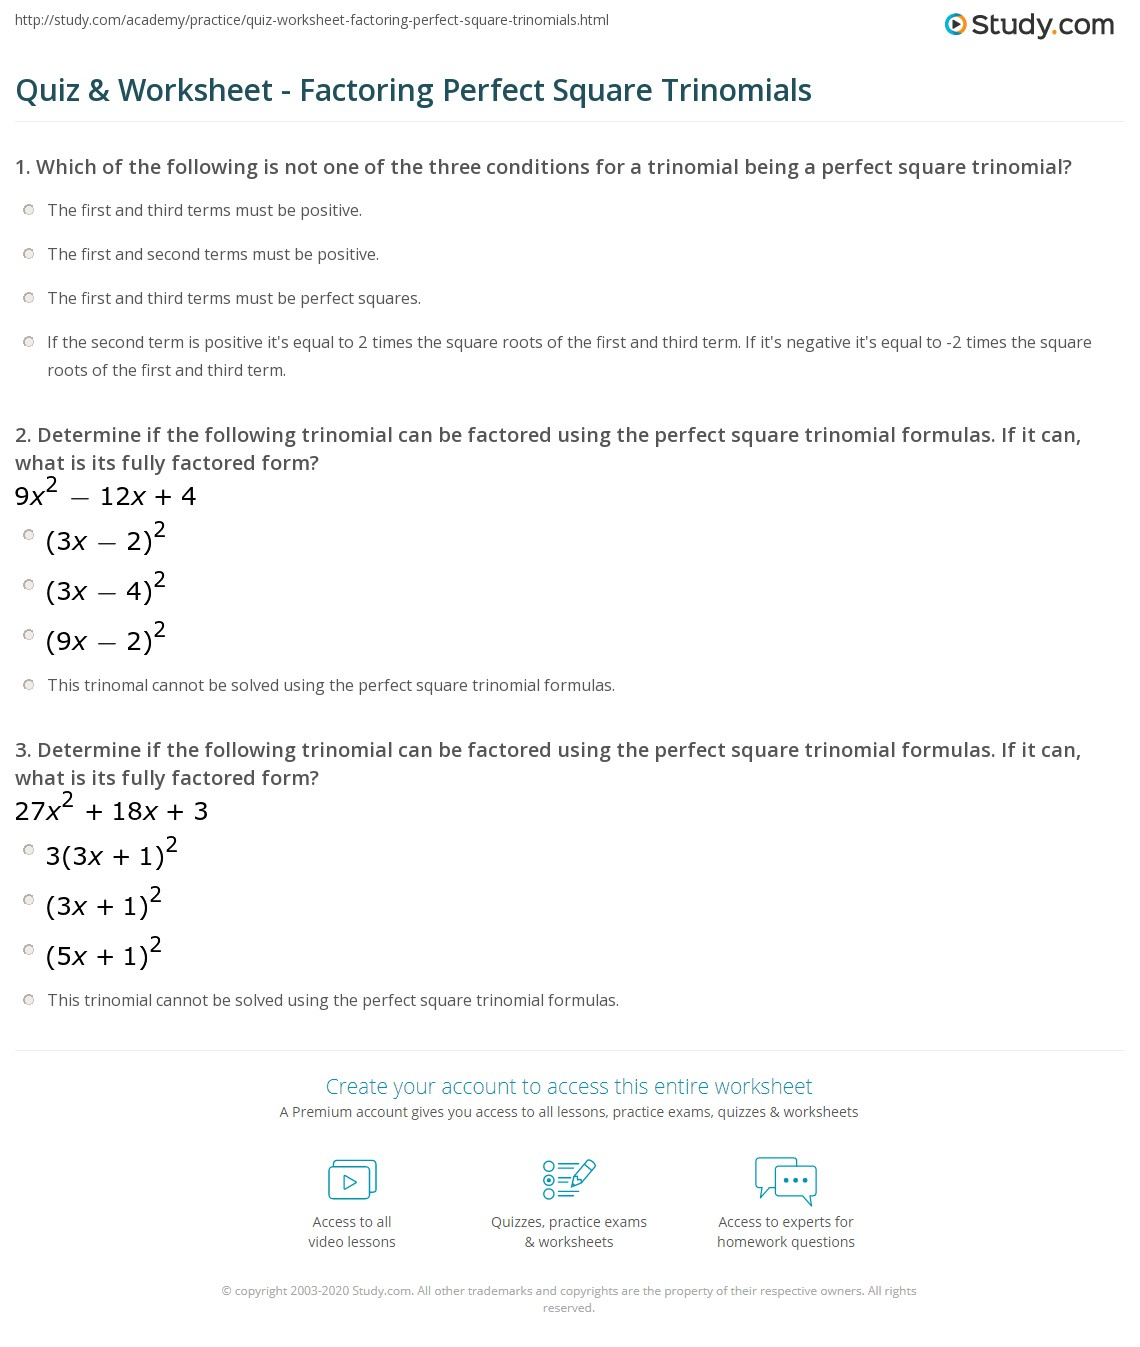 worksheet Perfect Squares Worksheet quiz worksheet factoring perfect square trinomials study com print practice problems worksheet